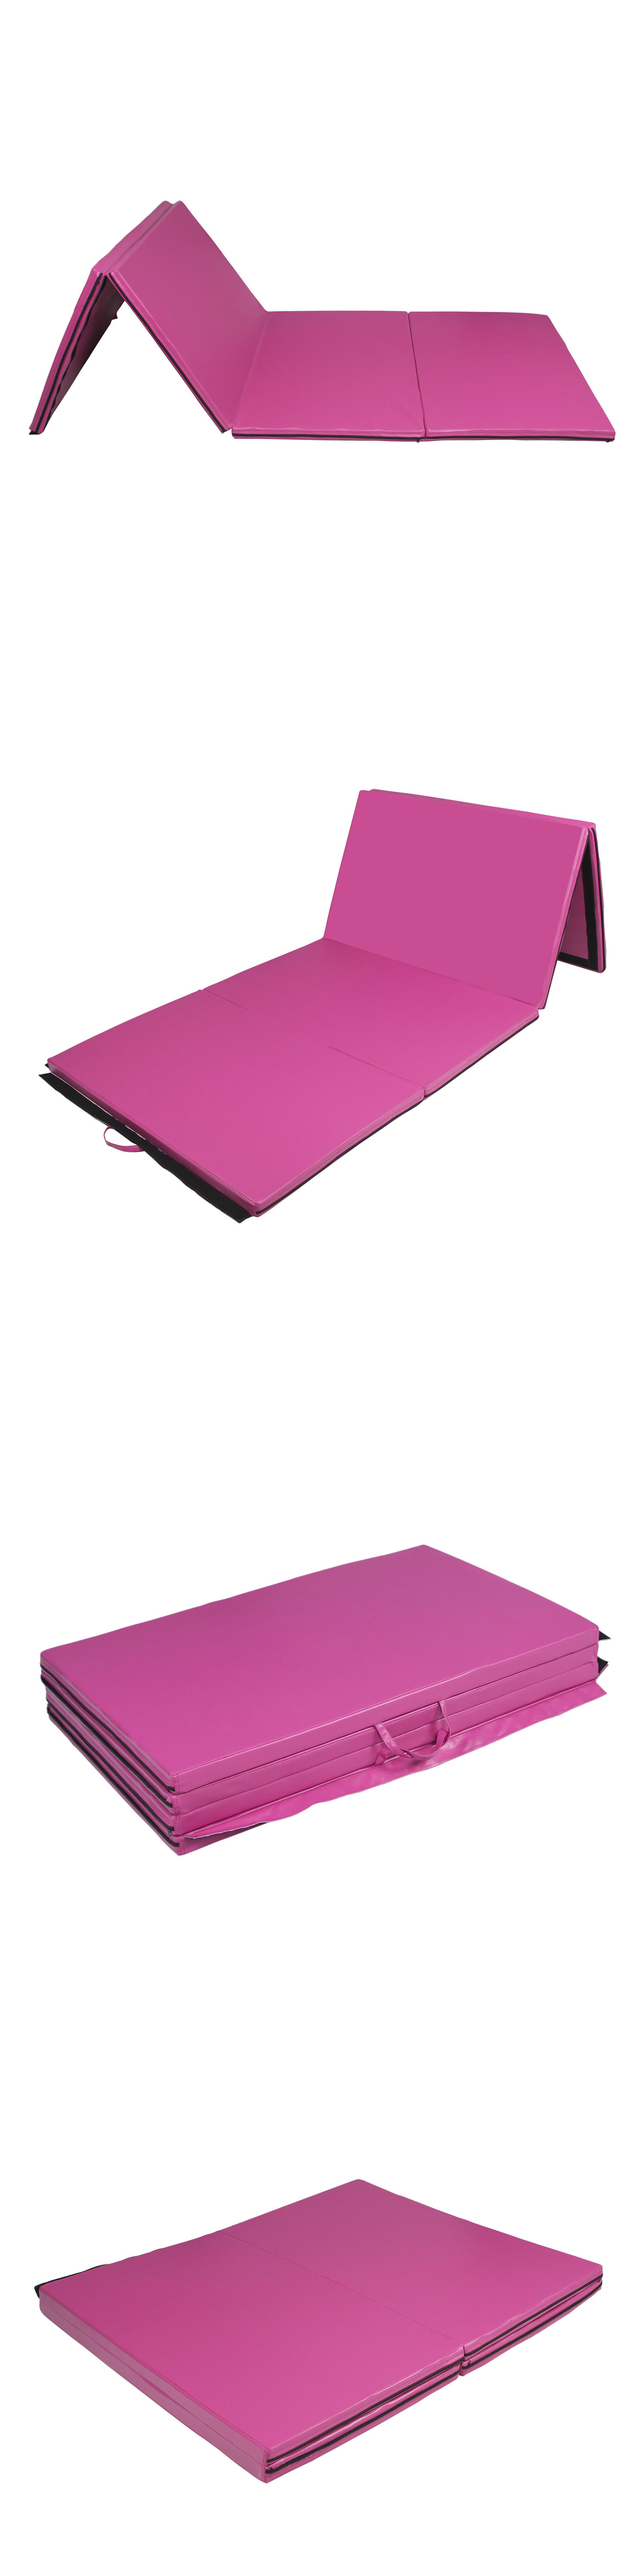 aerobics mats product folding best cheap gymnastics gym pink shop choice bestchoiceproducts rakuten exercise products mat